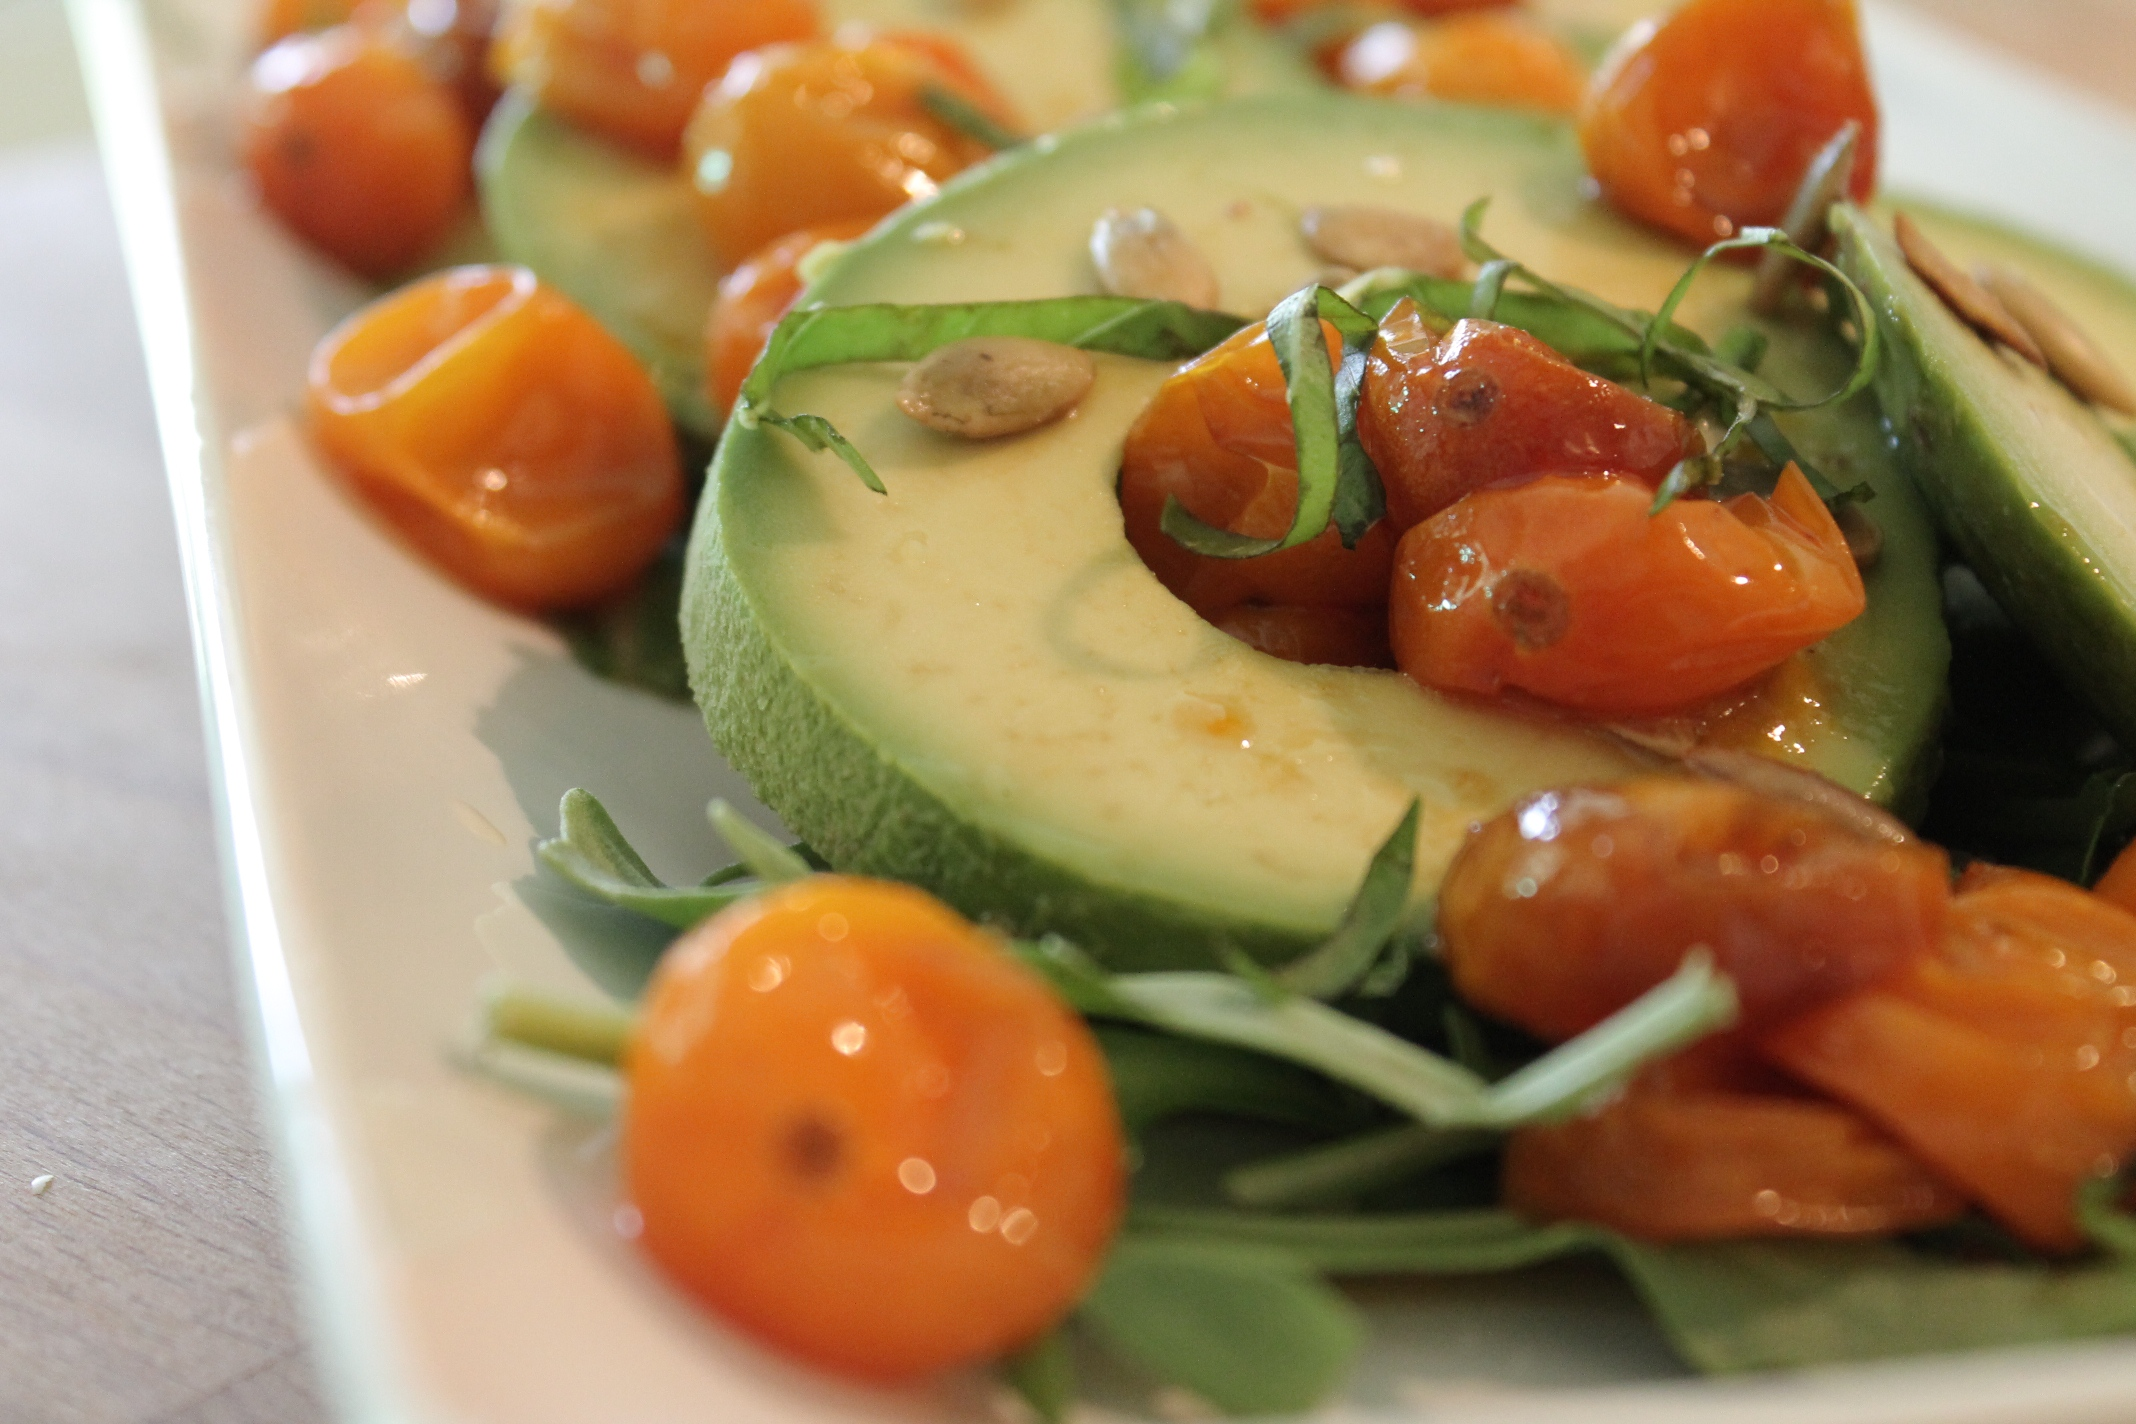 avocado with pomegranate molasses tomatoes, citrus, and basil.